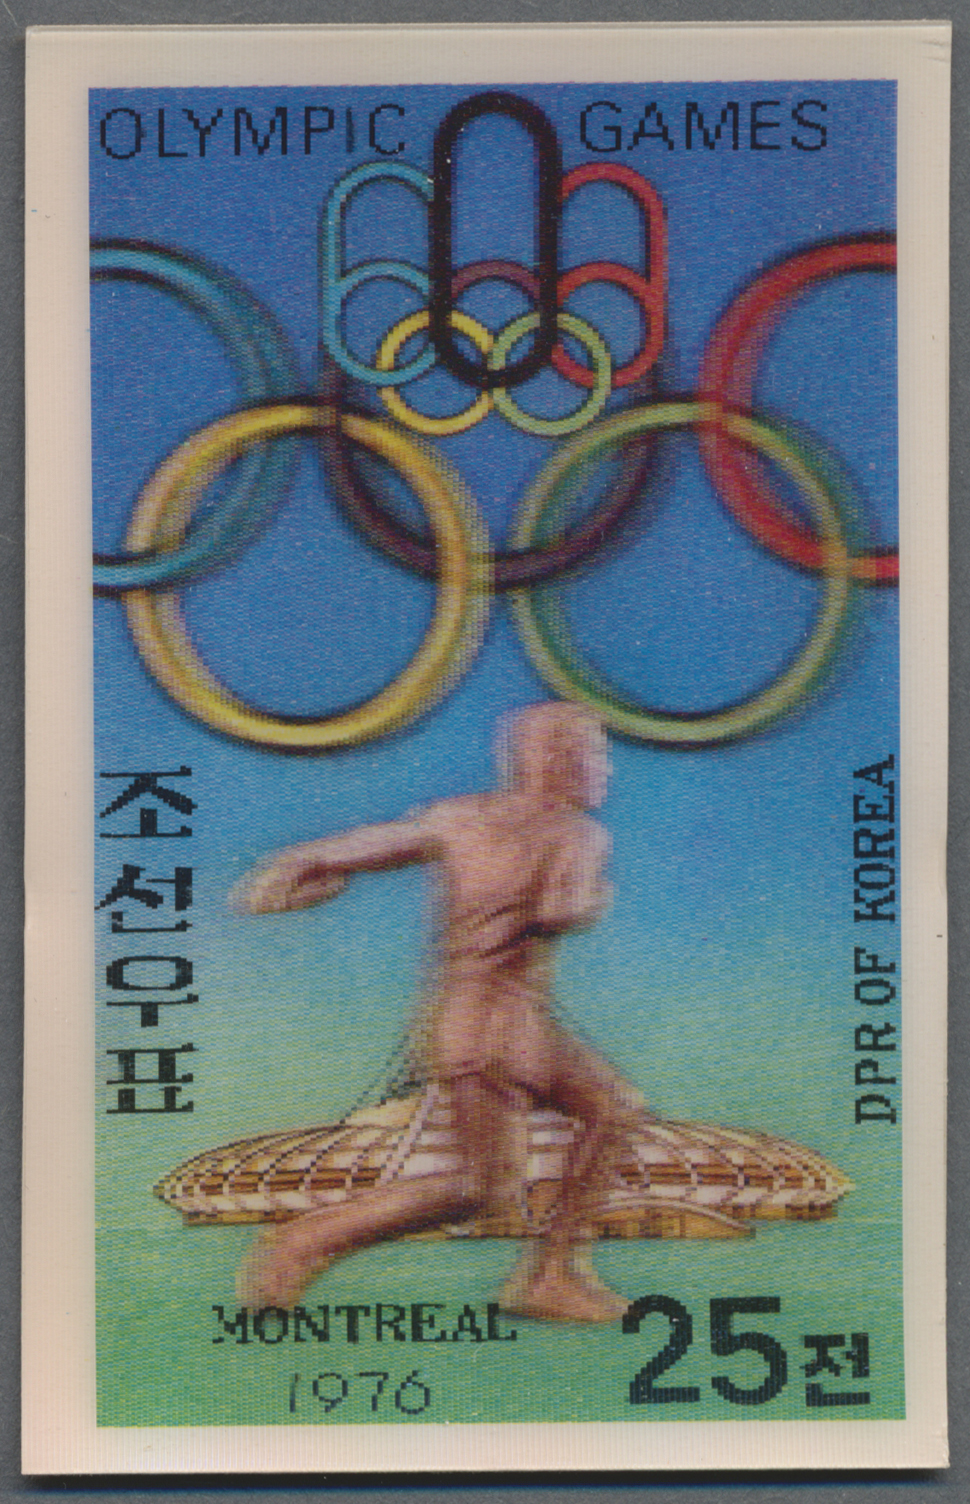 Lot 27014 - thematik: olympische spiele / olympic games  -  Auktionshaus Christoph Gärtner GmbH & Co. KG Sale #46 Gollcetions Germany - including the suplement